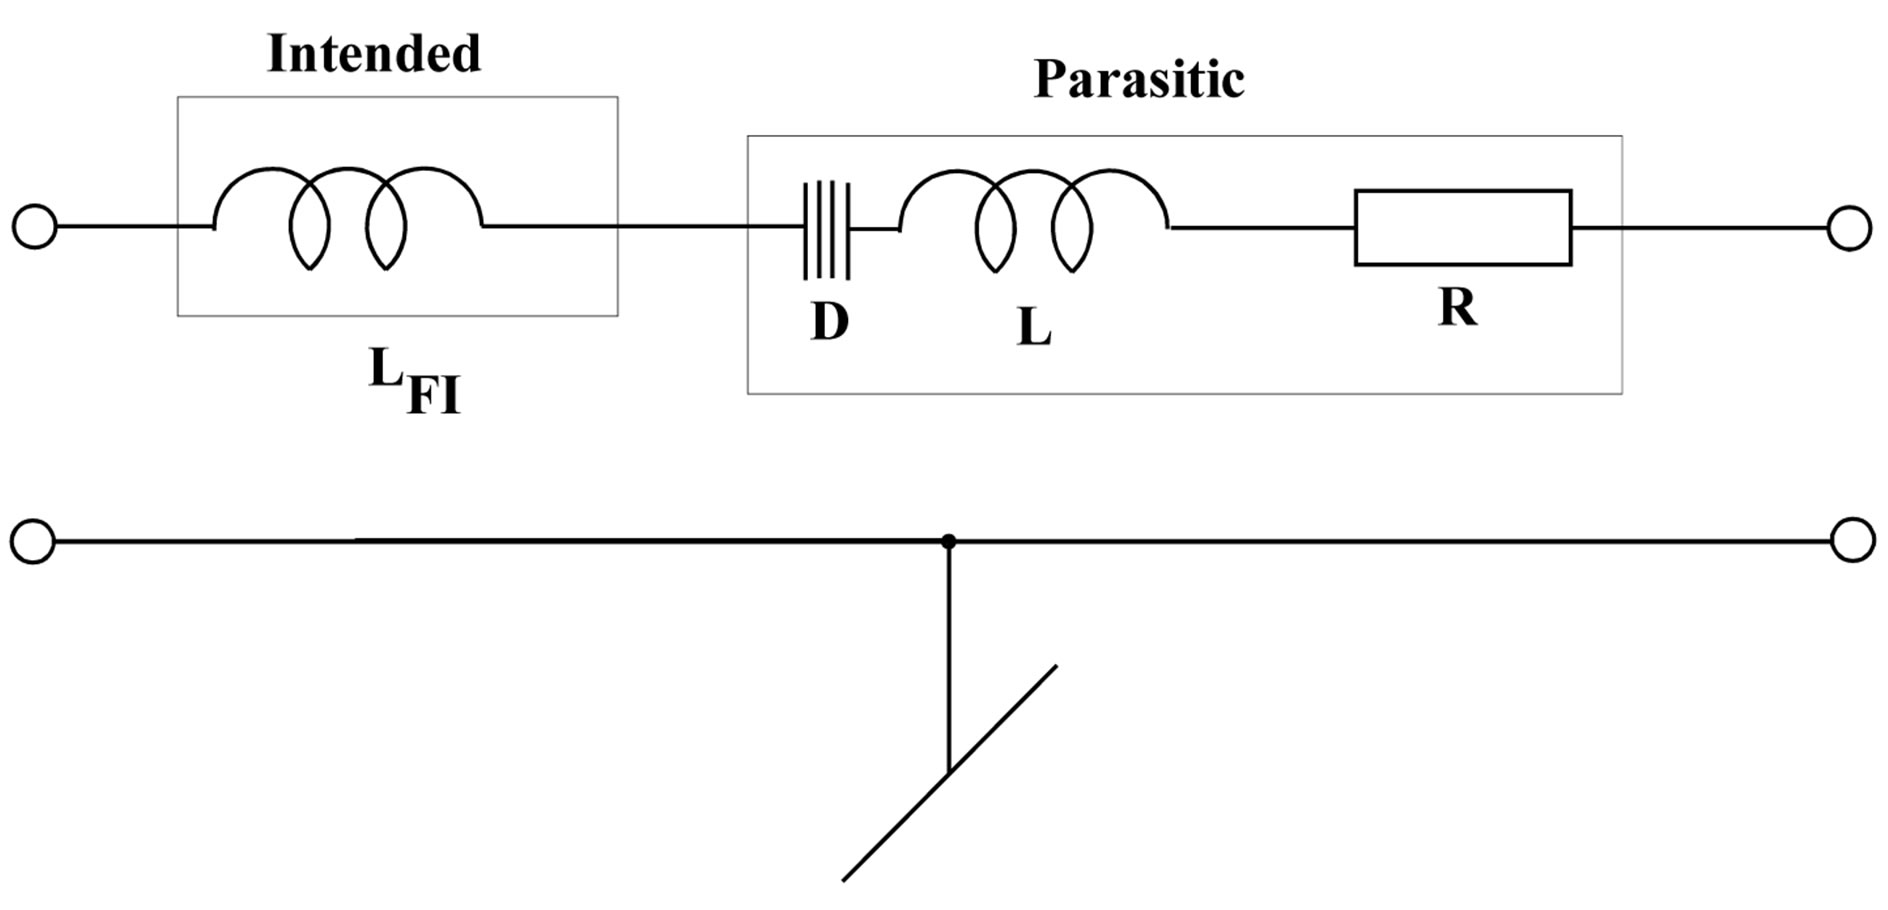 New Electronically Controllable Lossless Synthetic Floating Simulated Inductor Circuit For Replacing The Passive Non Ideal Equivalent Of Figure 3